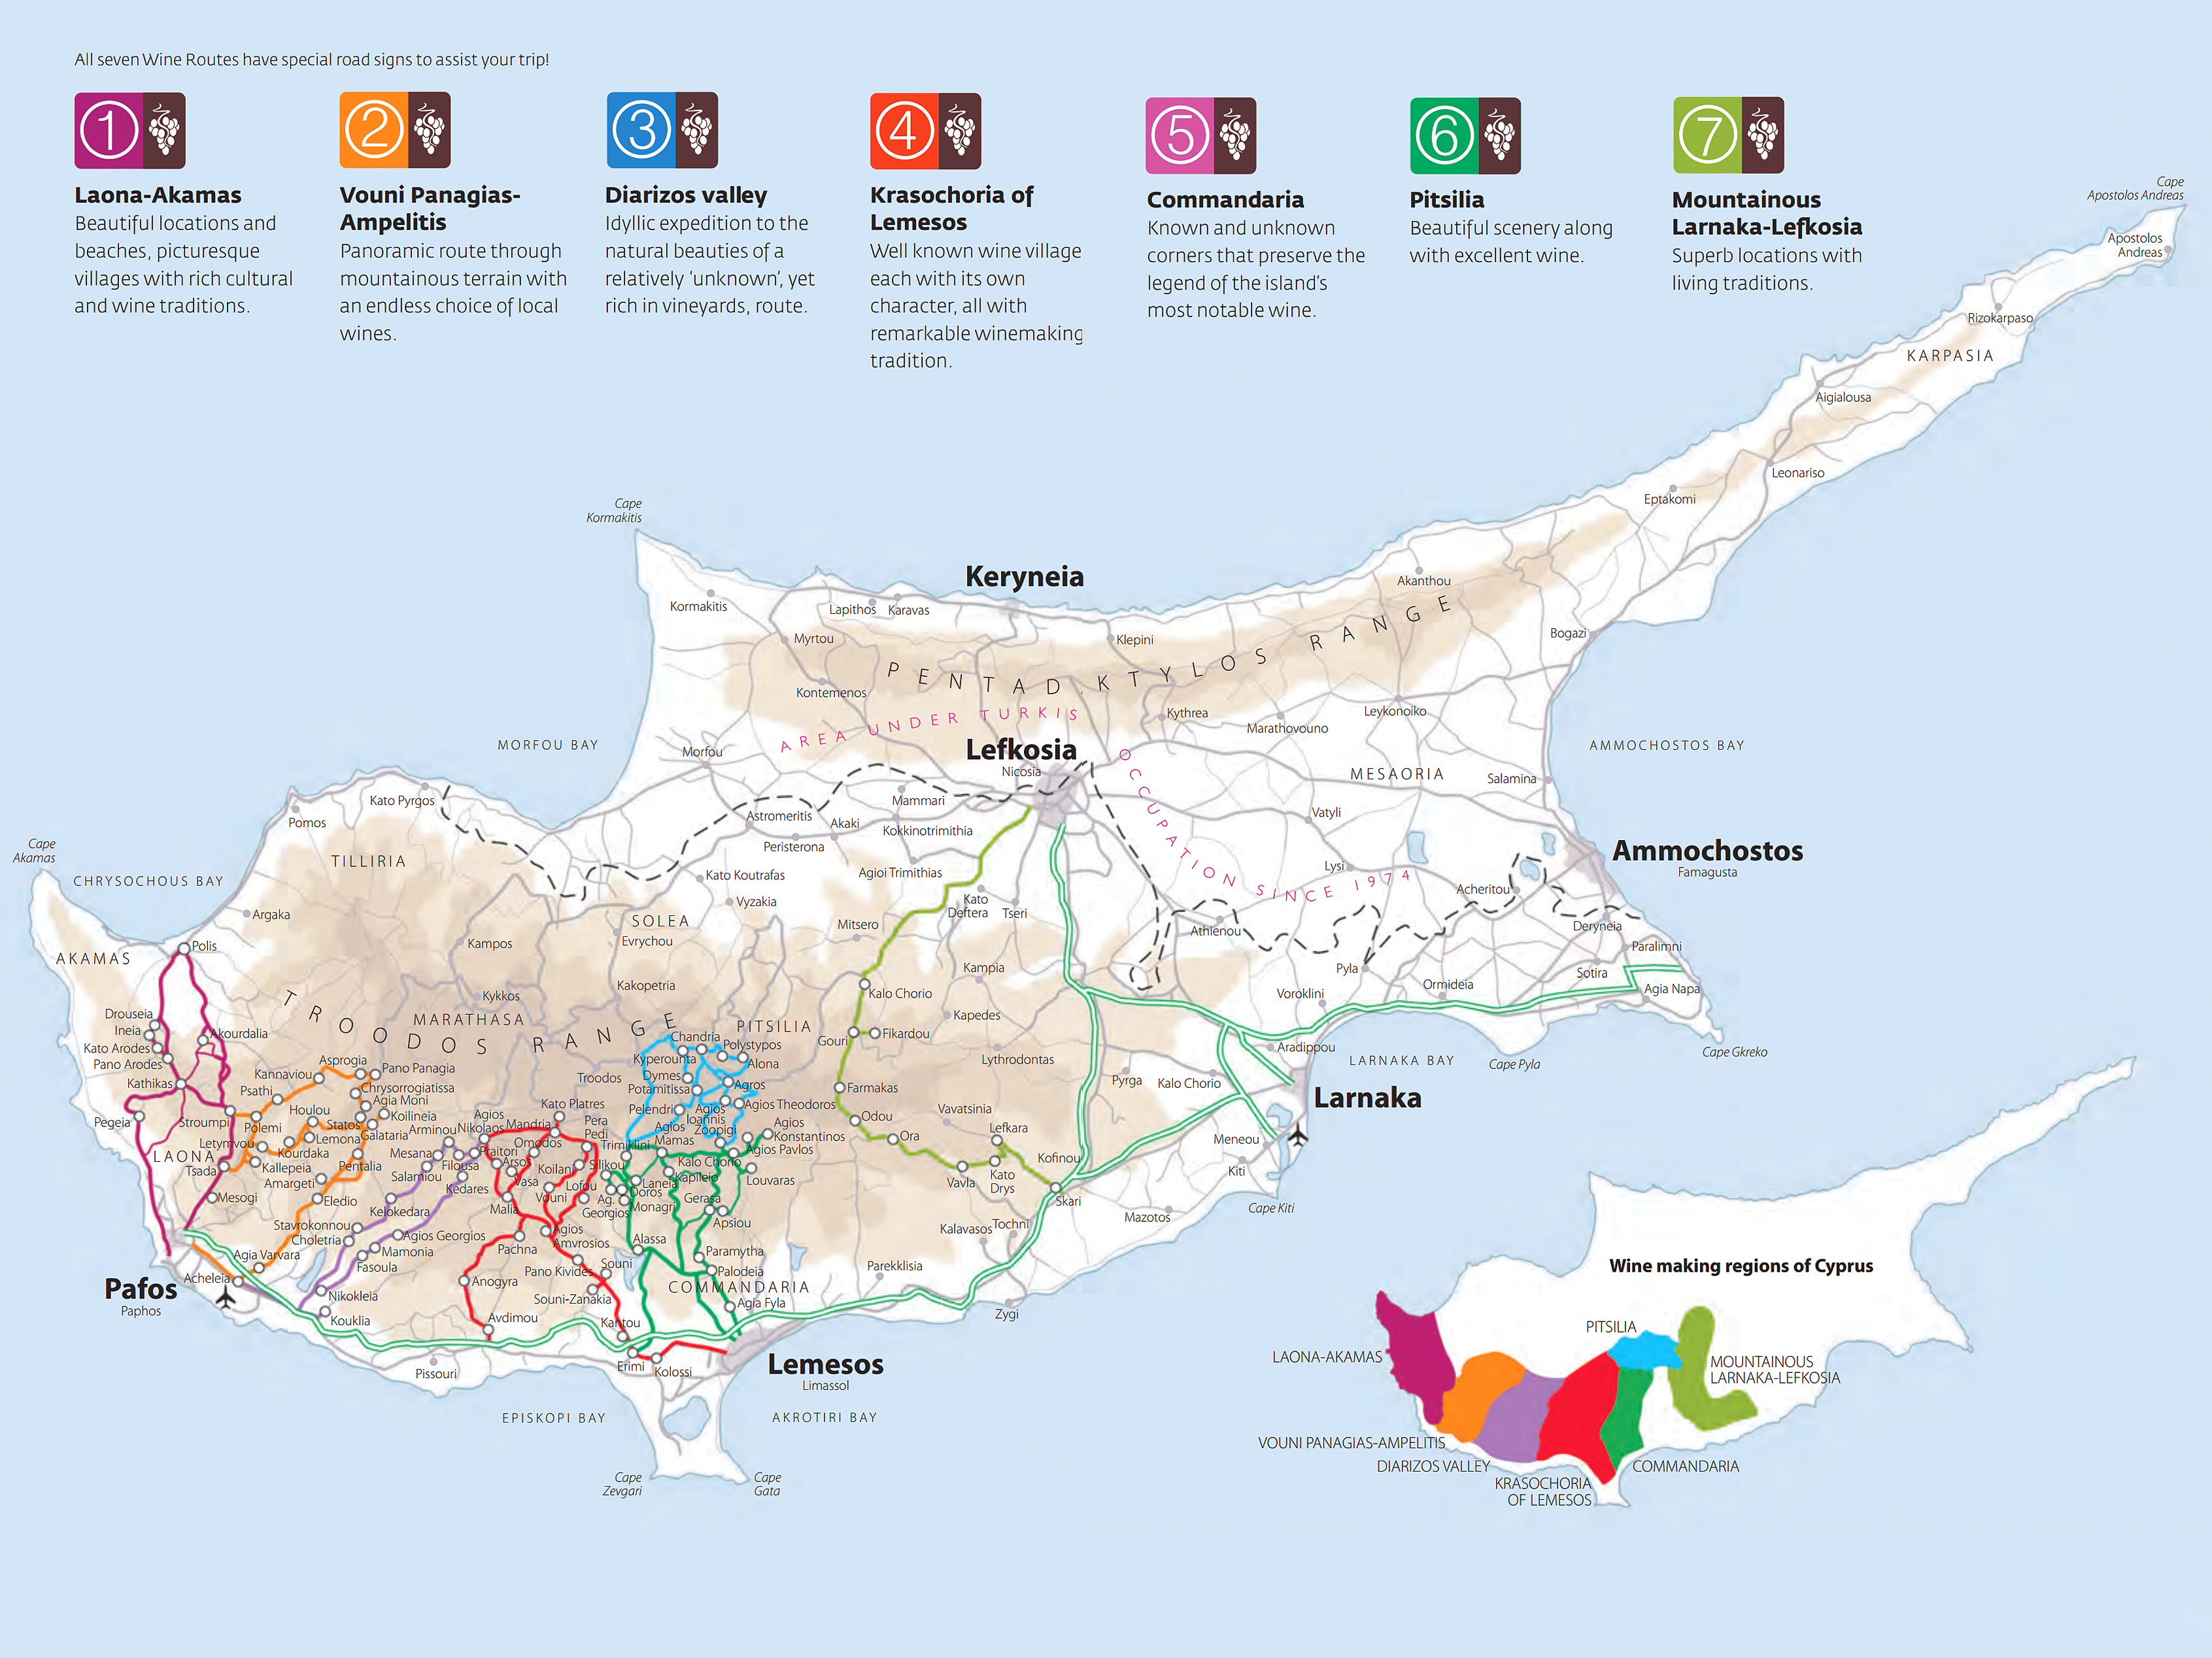 Cyprus Wine Routes Visit in Cyprus Booking in Cyprus Holidays